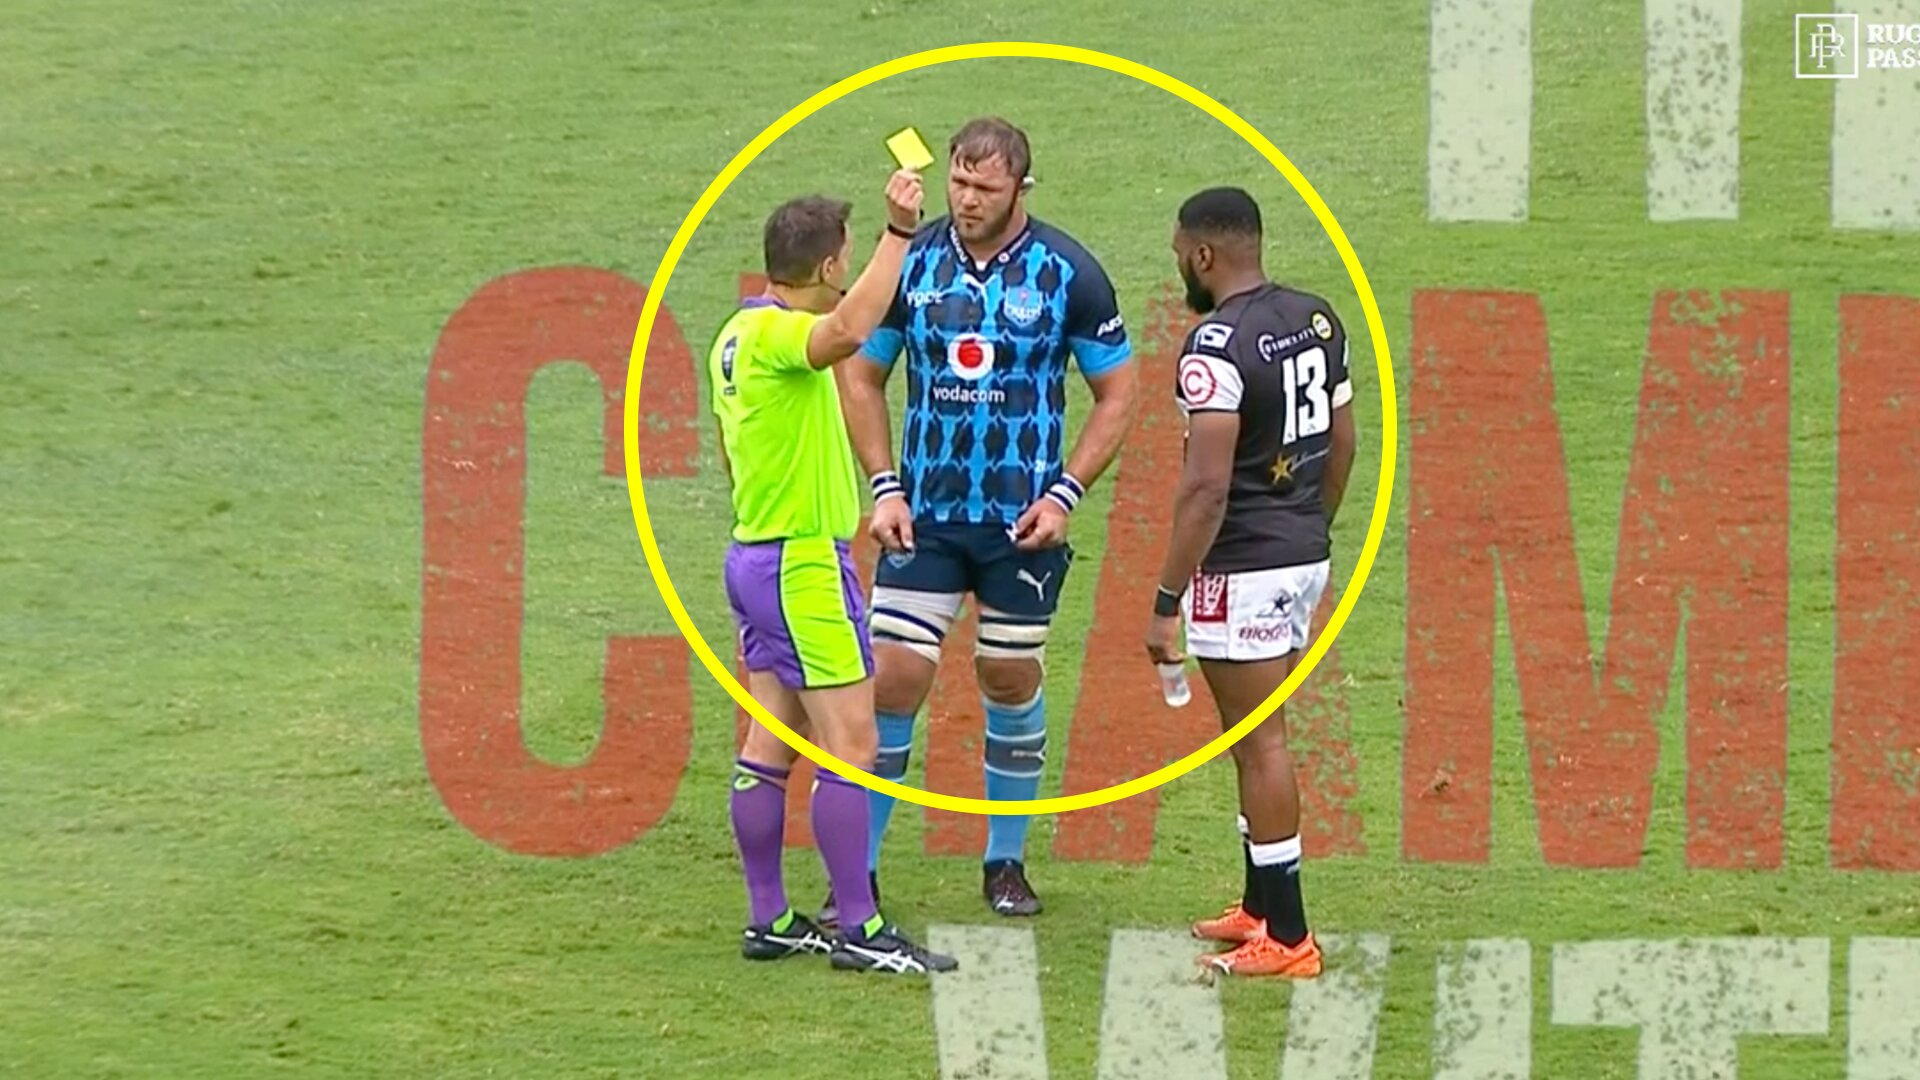 Duane Vermeulen in hot water after 'insensitive' joke to ref sparks outrage online